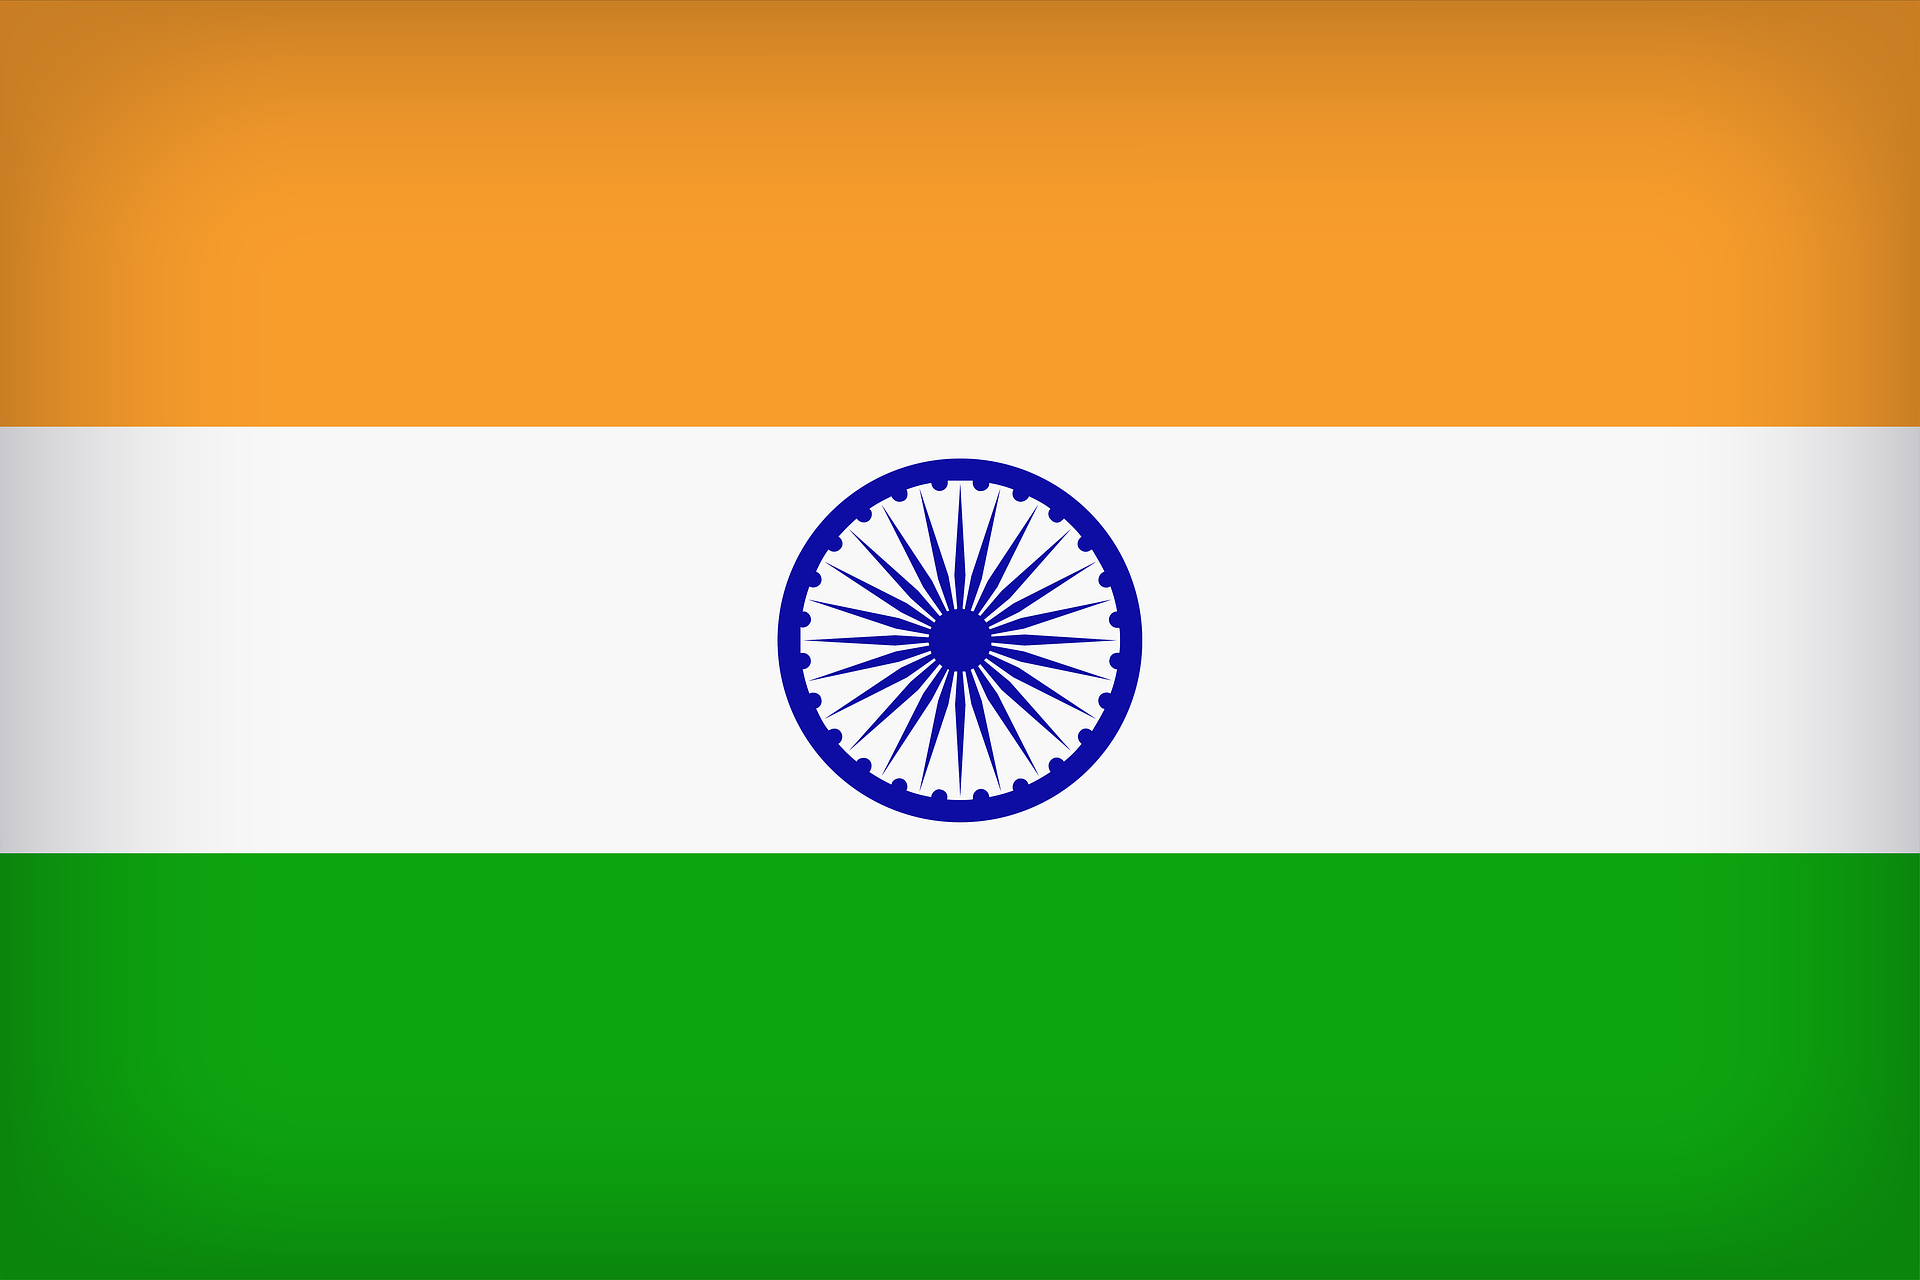 india flag,country,background,backdrop,flag,india,national,nation,patriotic,patriotism,banner,symbol,design,government,pride,culture,tricolor,honor,heritage,